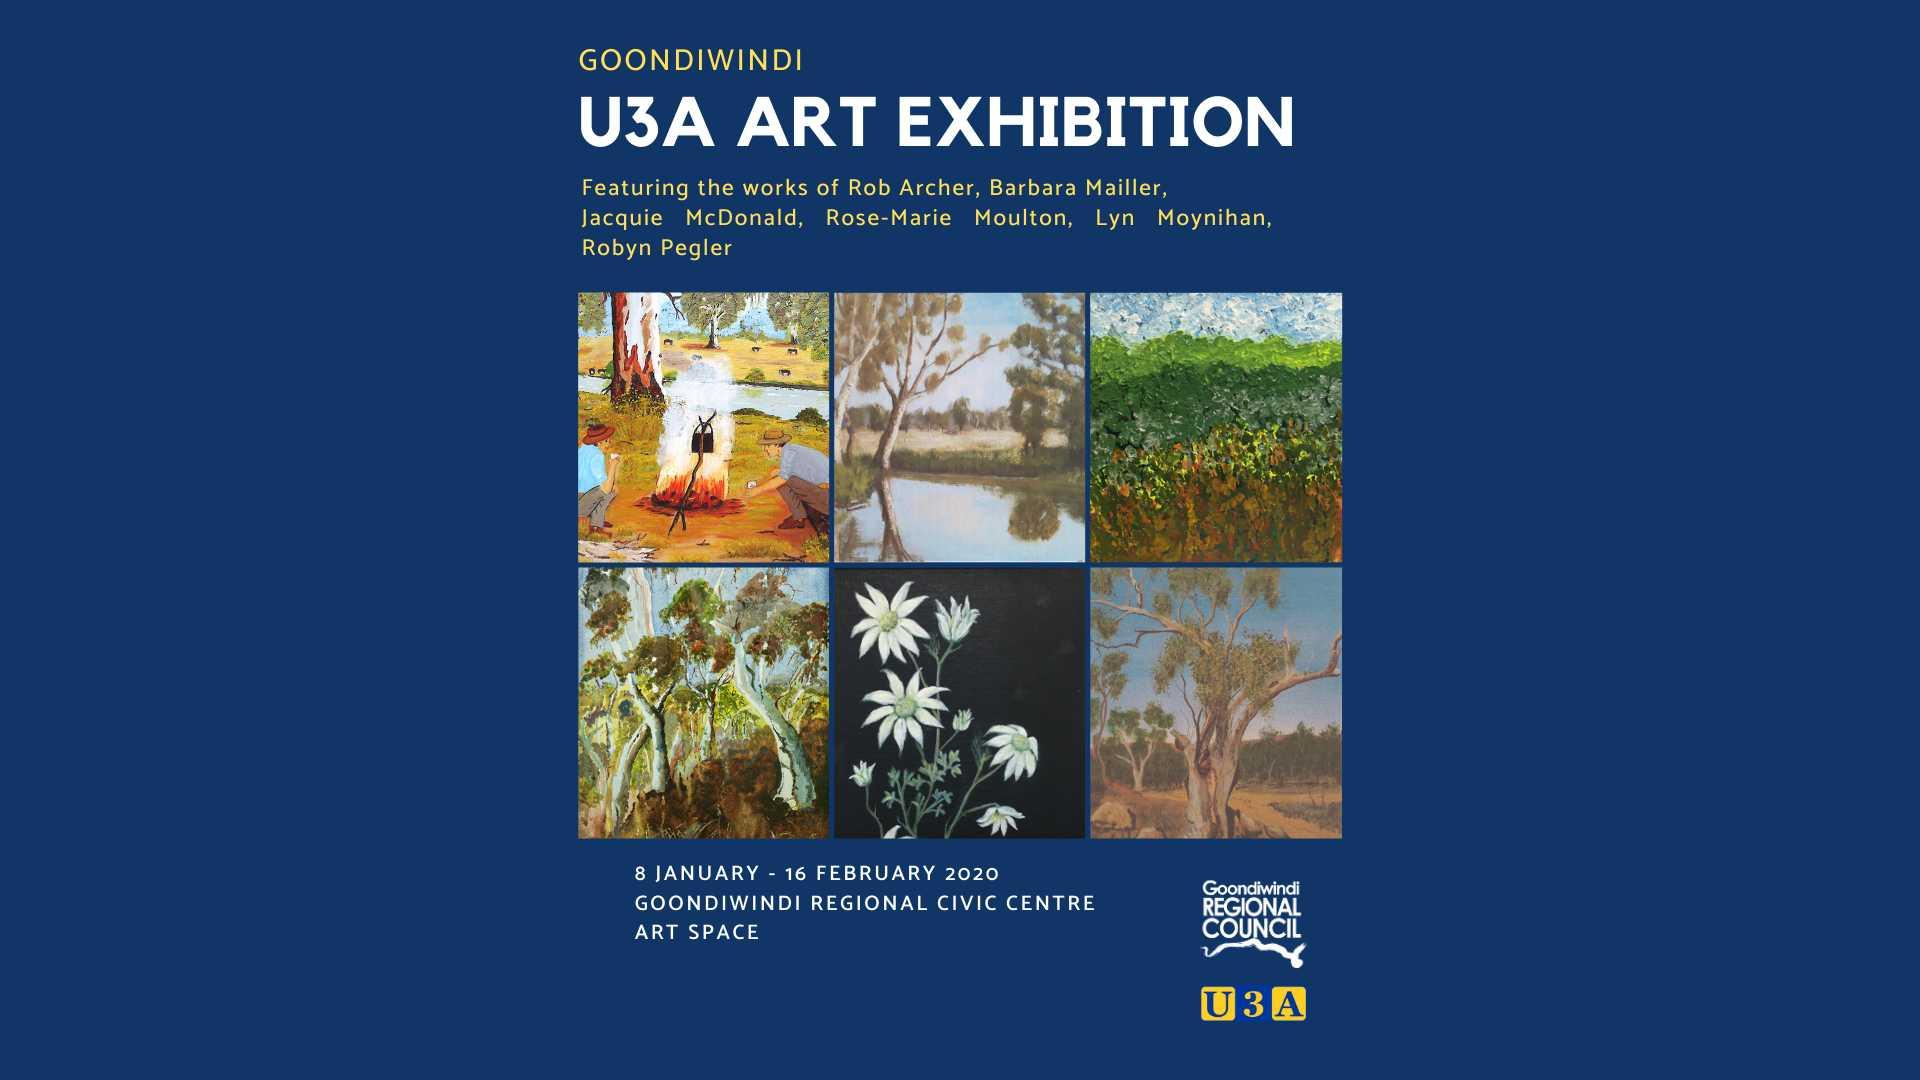 u3a art exhibition featuring the works of Rob Archer, Barbara Mailler, Jacquie McDonald, Rose-Marie Moulton, Lyn Moynihan and Robyn Pegler